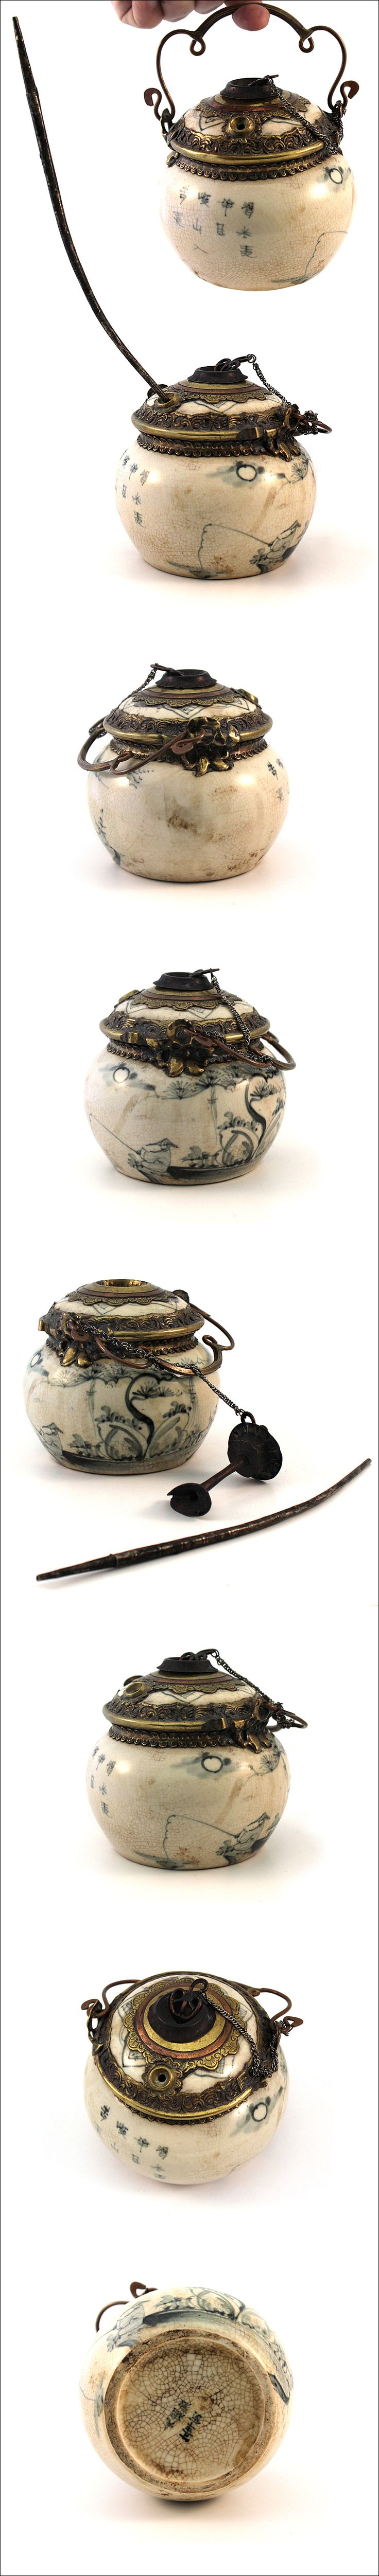 Ceramic Opium Pipe, Yunnan, South ChinaMore Pins Like This One At FOSTERGINGER @ PINTEREST No Pin Limitsでこのようなピンがいっぱいになるピンの限界